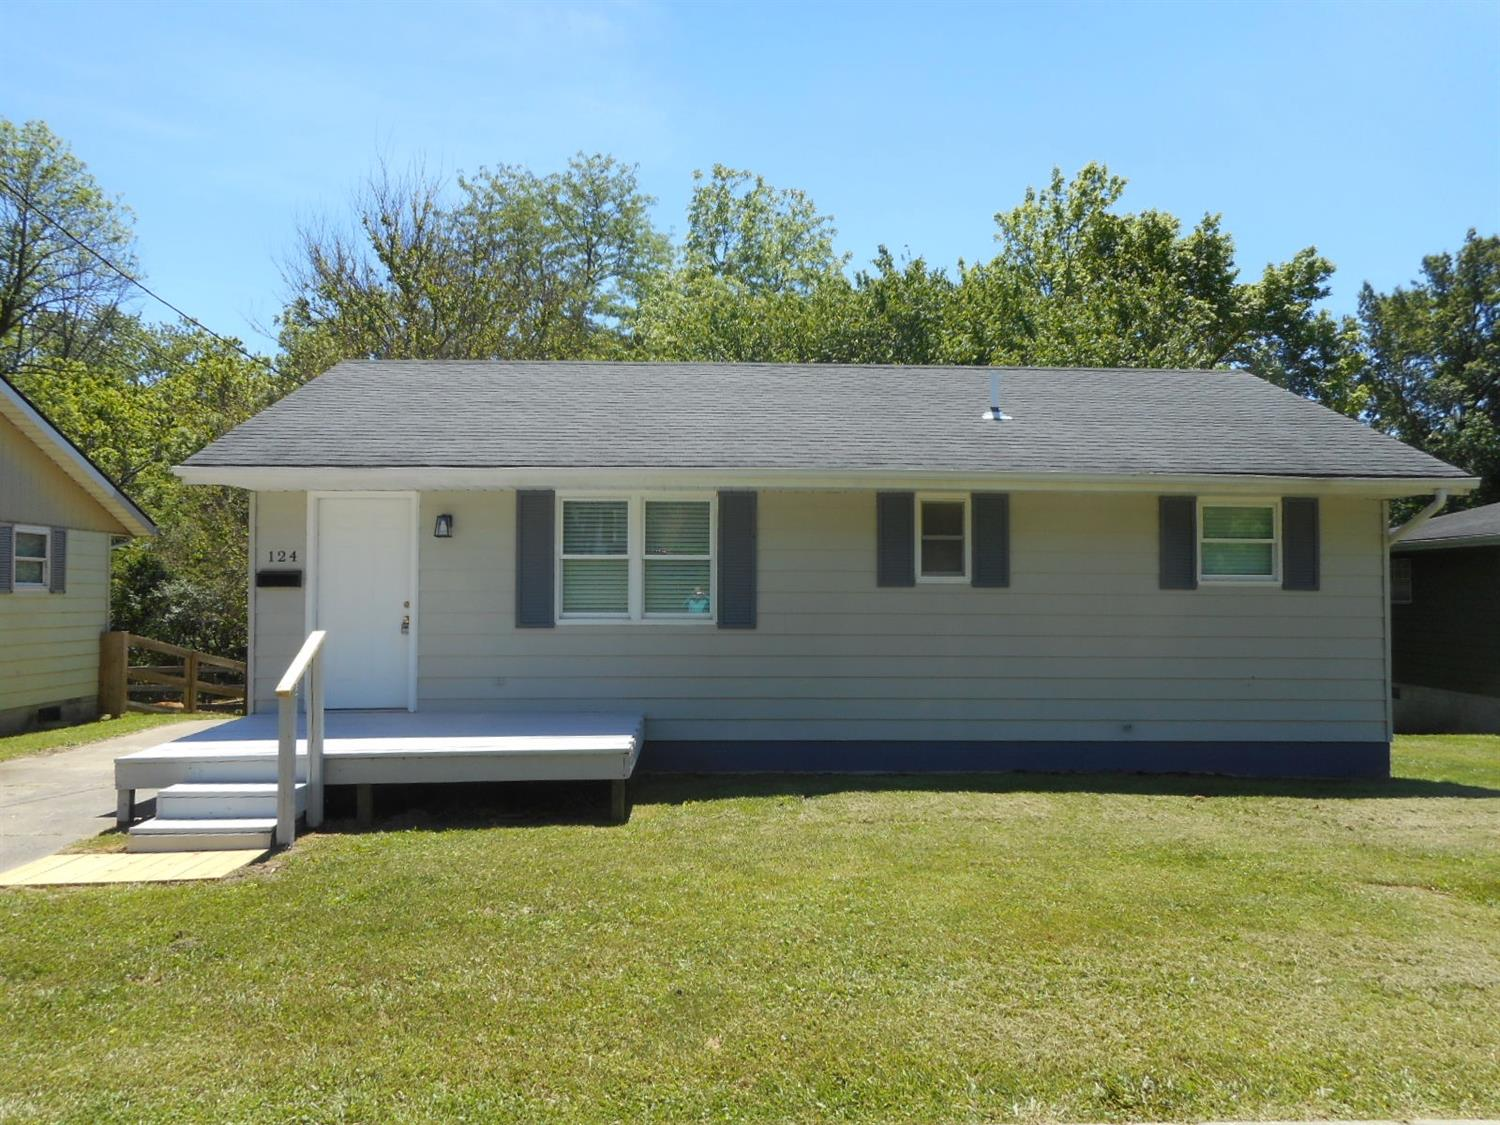 Property for sale at 124 Orchard View Lane, Blanchester,  Ohio 45107